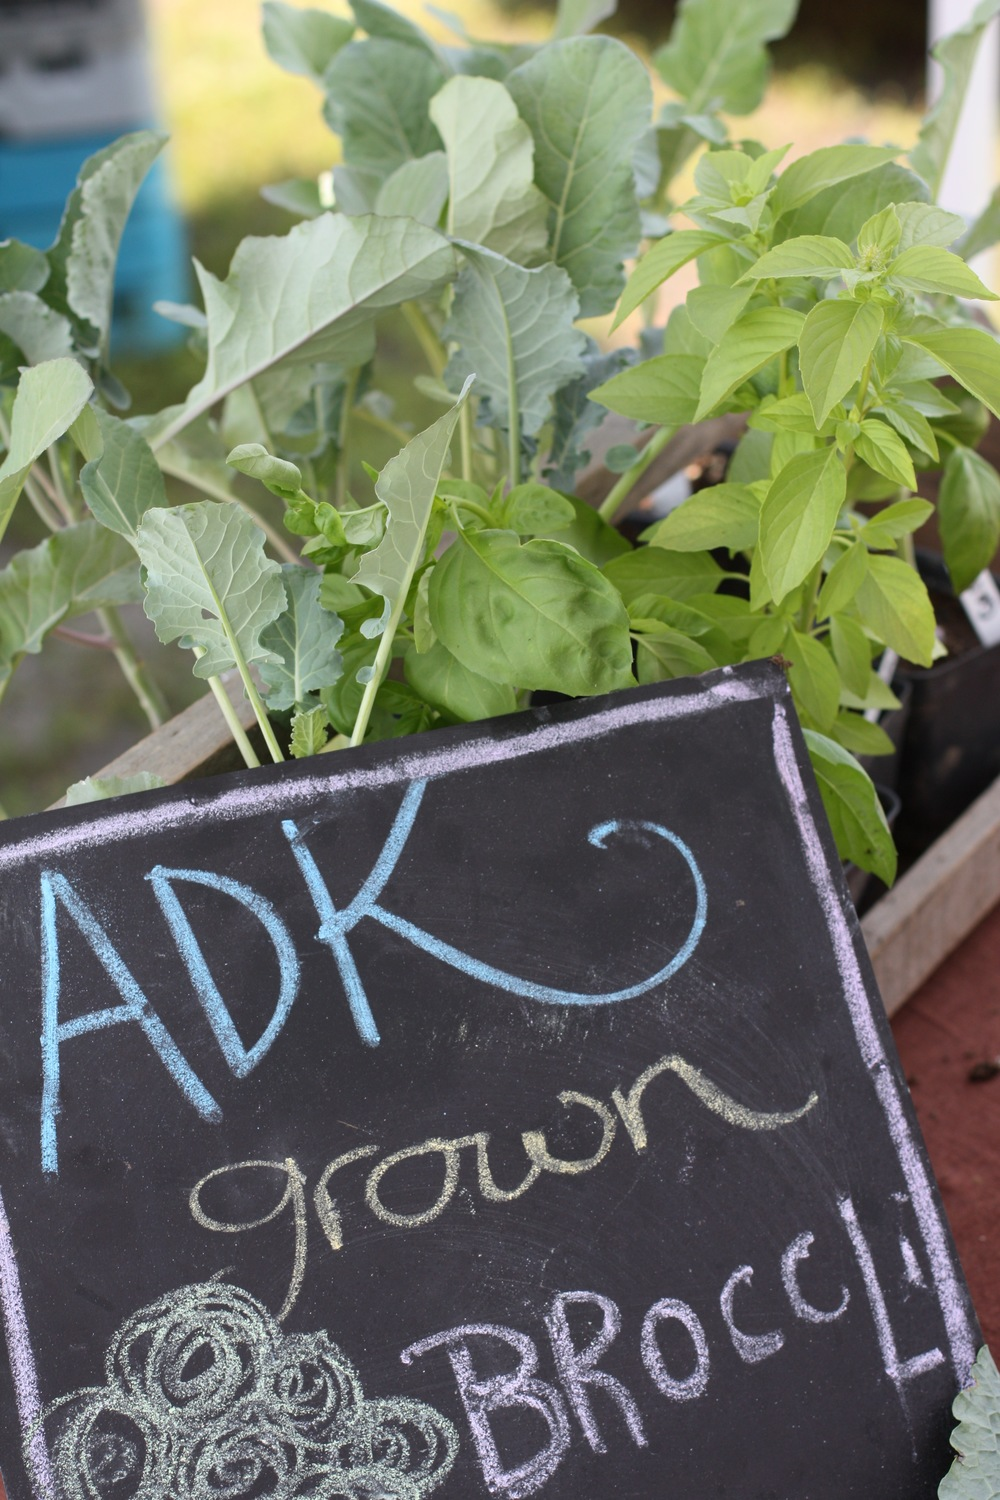 Schroon's Monday Farmer's Market 2015. From the Schroon Laker Collection. All Rights Reserved.